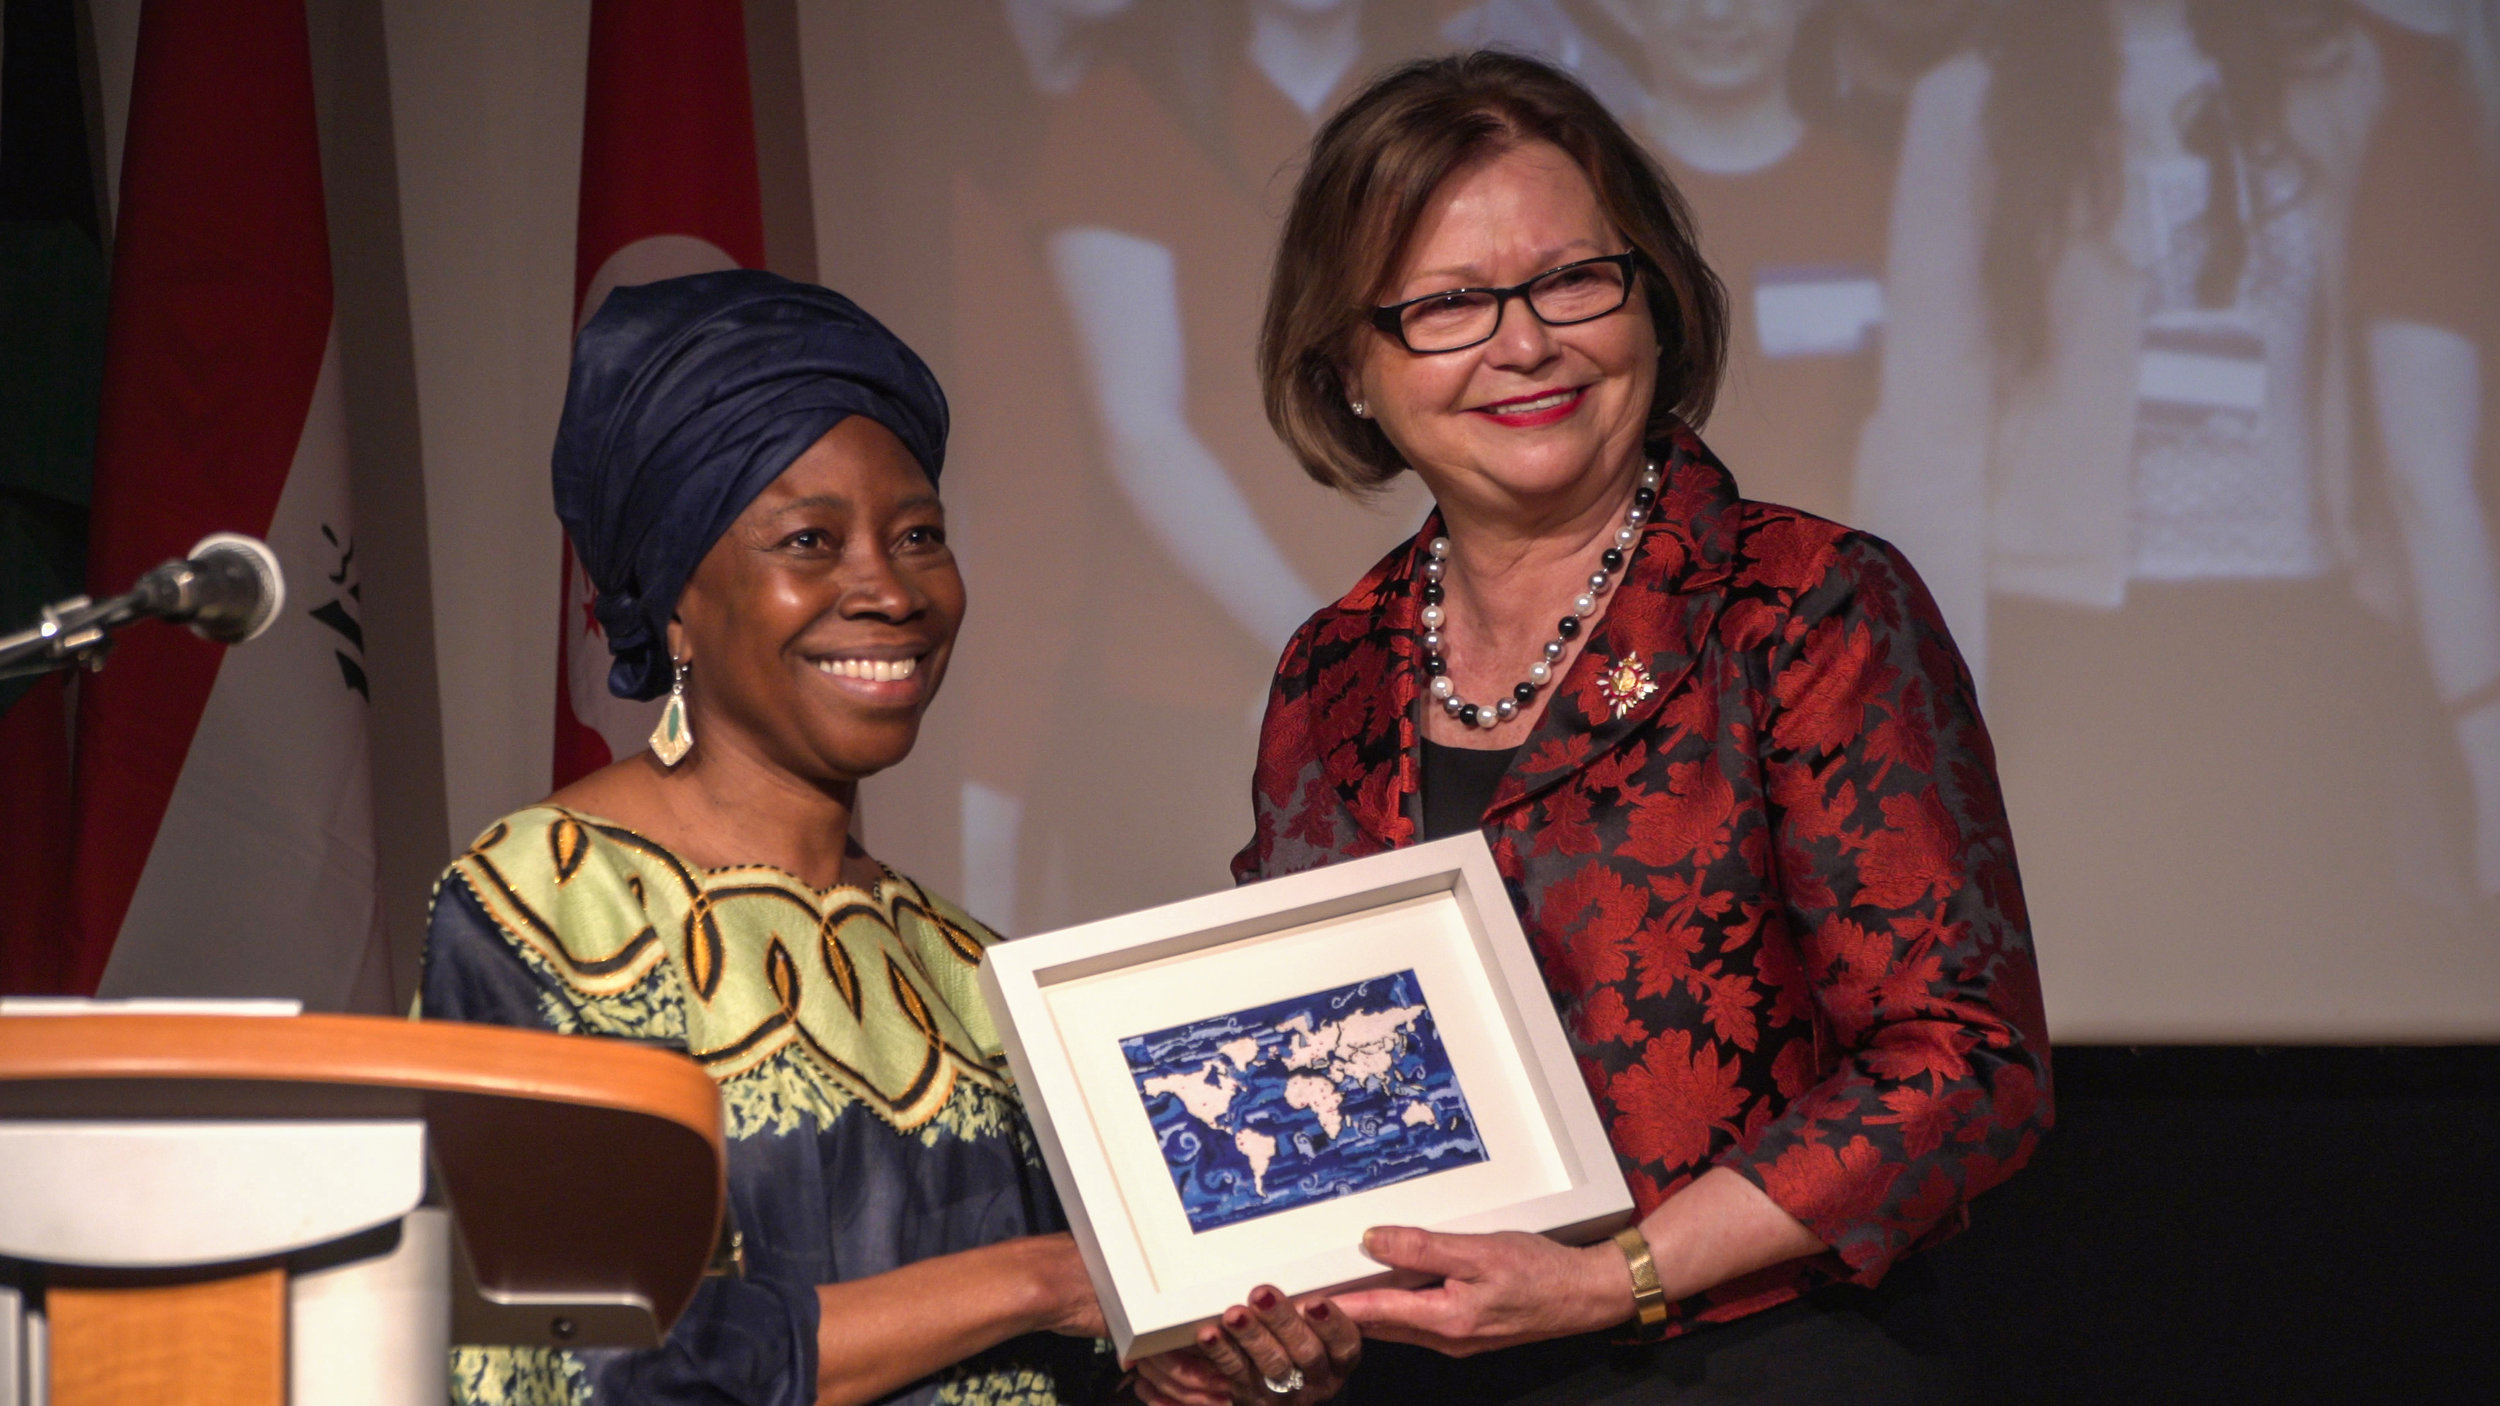 Lloydetta Quaicoe and Judy Foote at the 20th anniversary of Sharing Our Cultures.